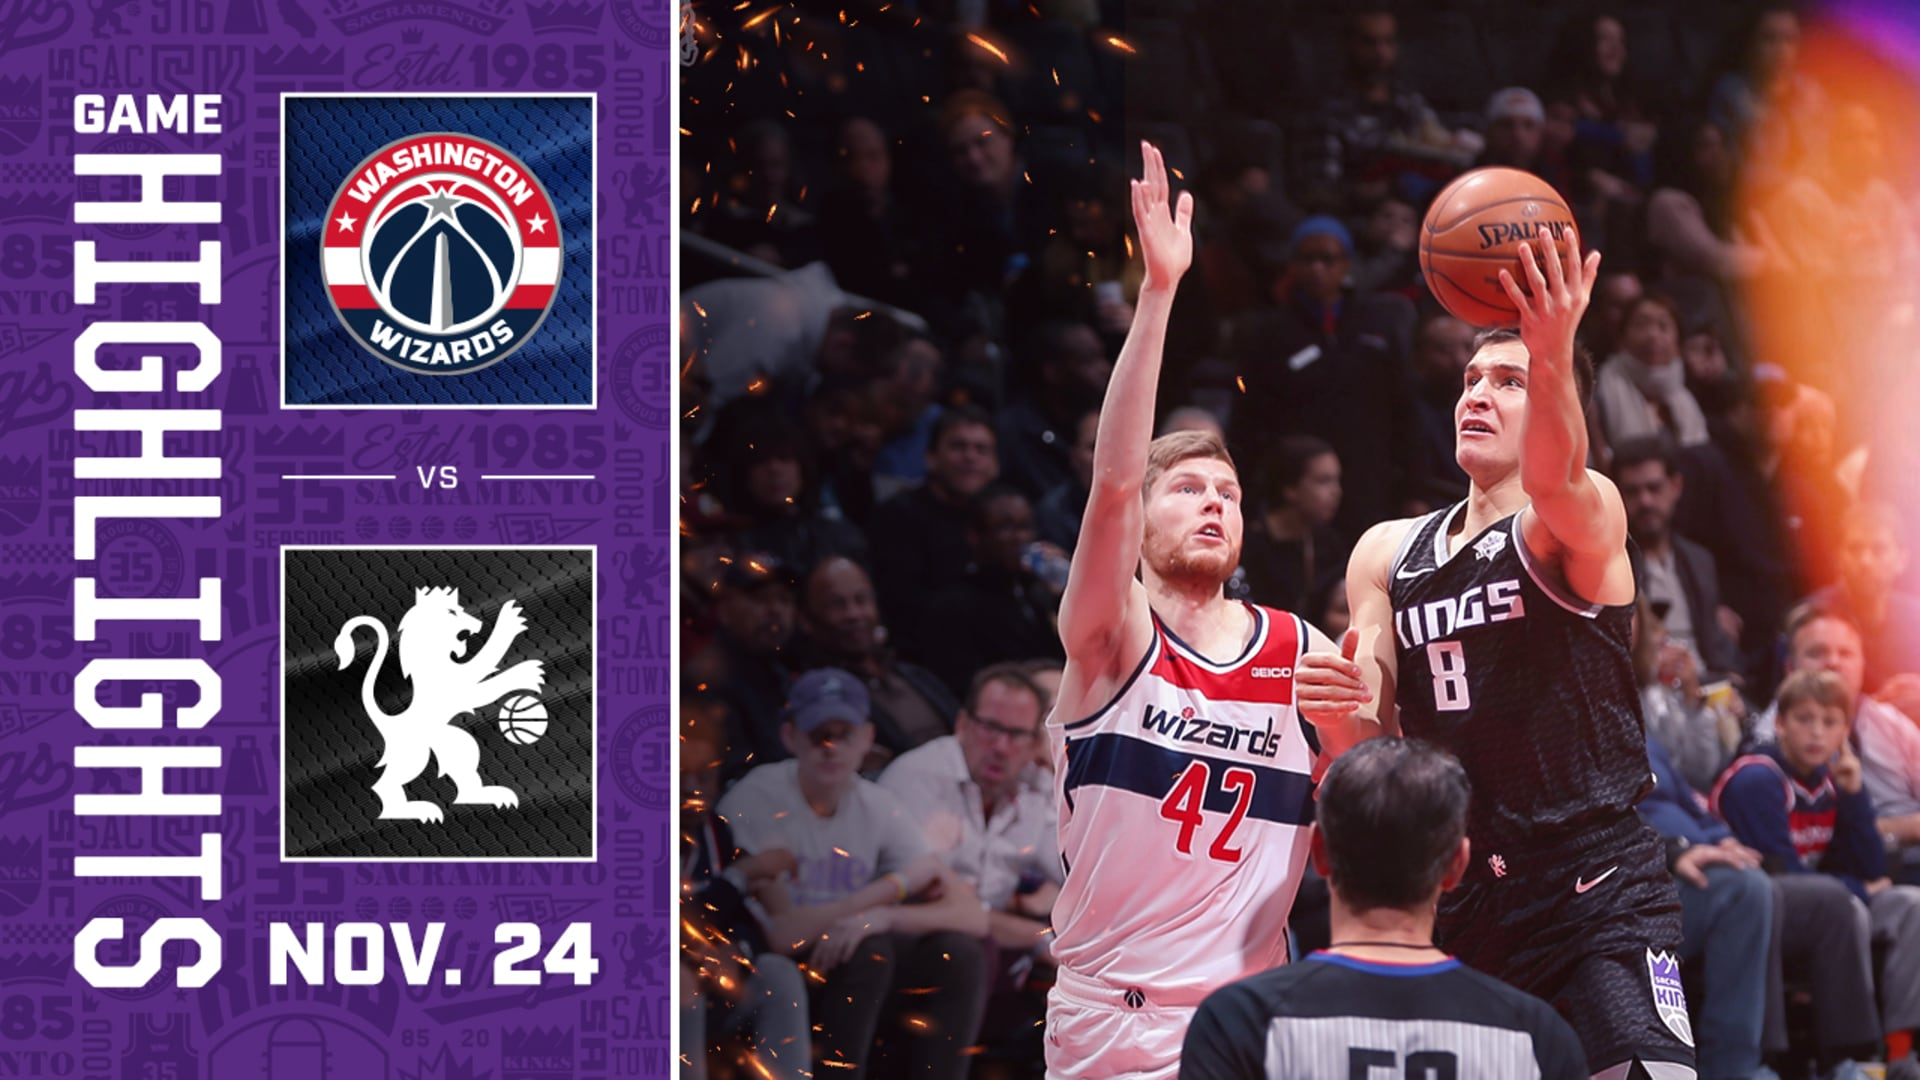 Kings Bring the Heat in WIN Over Washington! | Kings vs Wizards Highlights